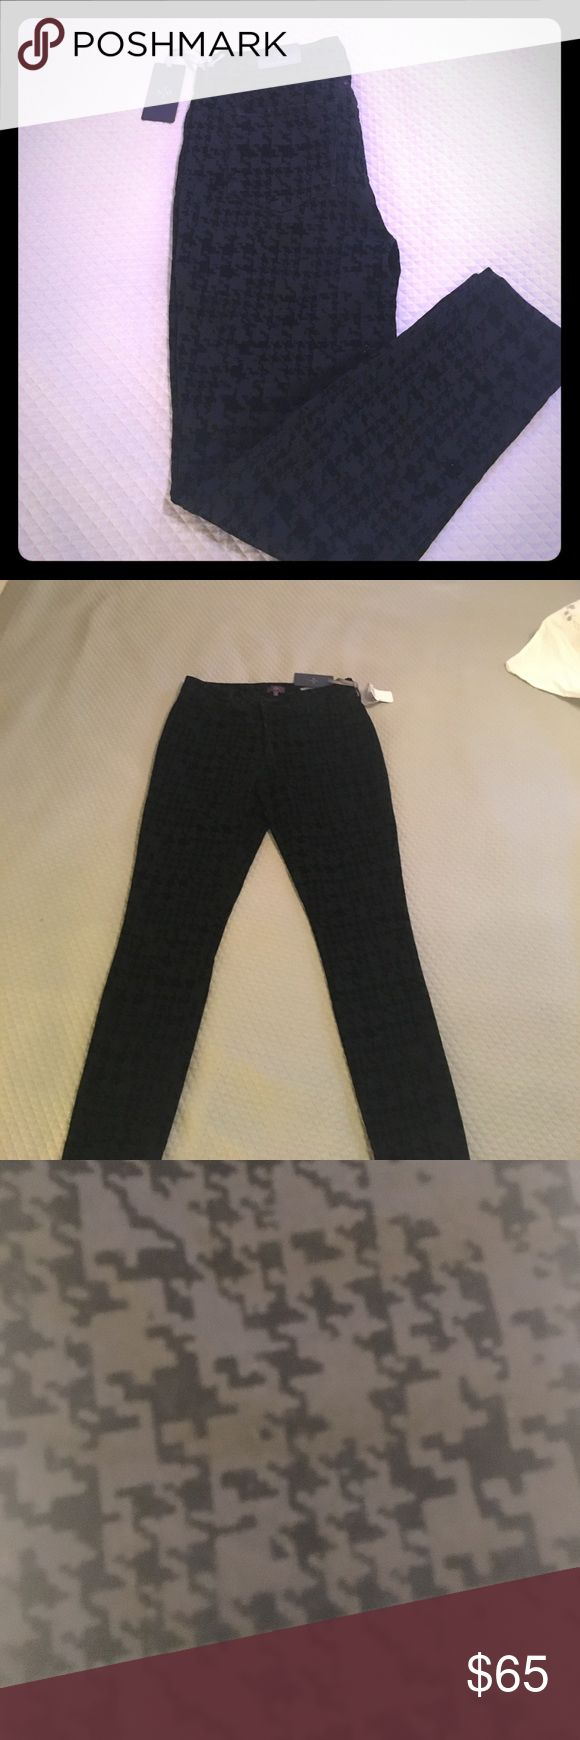 NWT NYDJ Black Skinny Pants New with tags // cotton poly spandex blend // super skinnies // houndstooth pattern // extremely cute and stylish NYDJ Pants Skinny